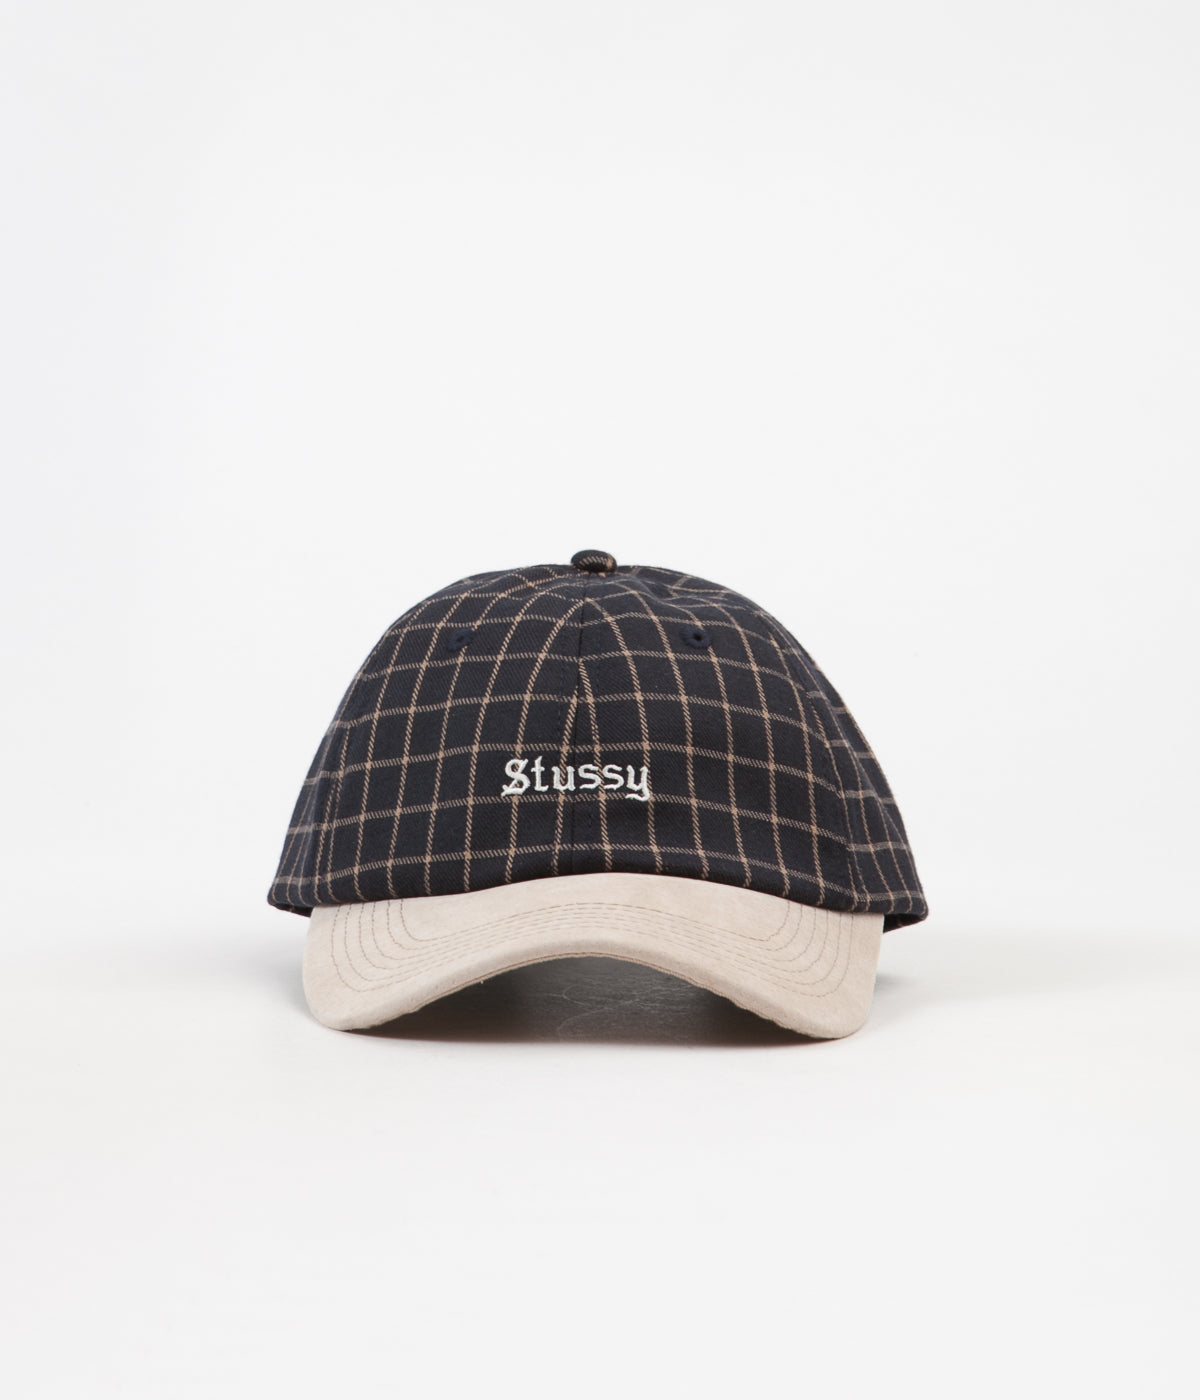 Stussy Check Suede Low Cap - Black